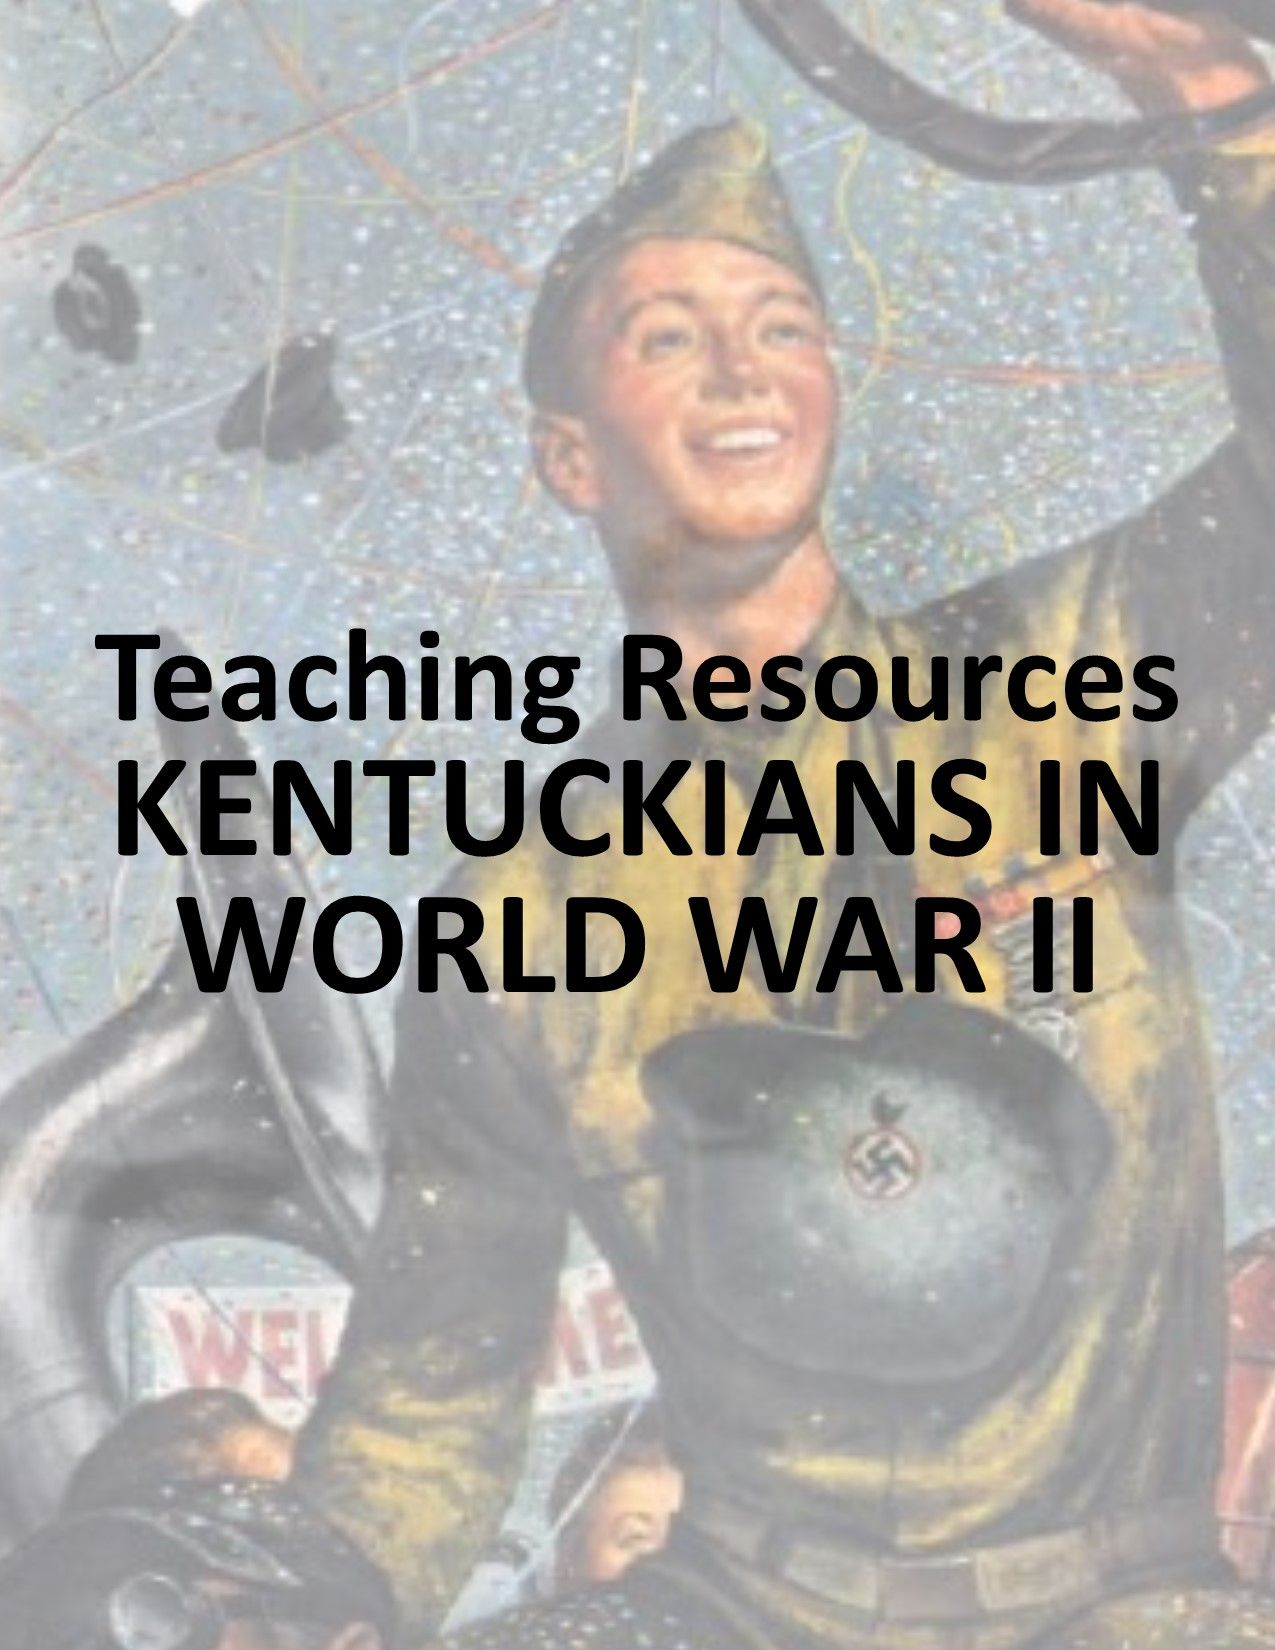 Pin by kentucky historical society on teaching resources